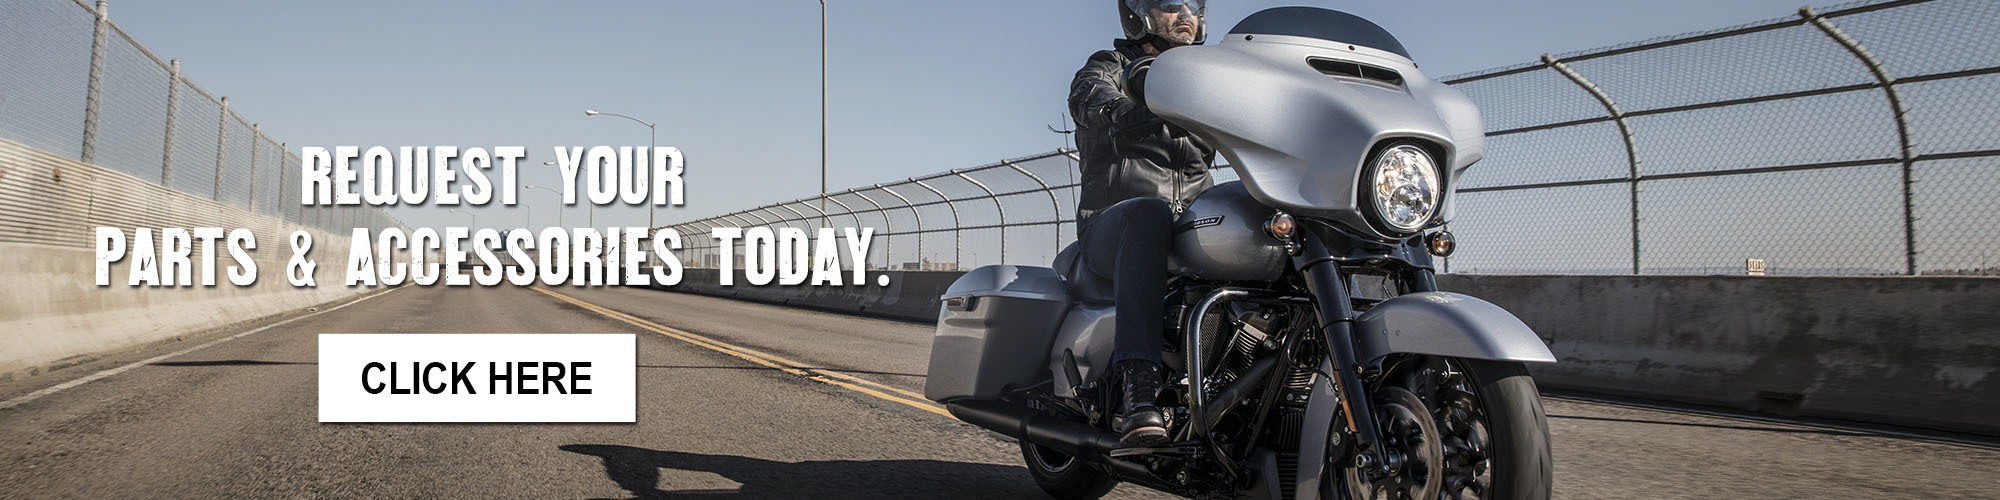 Request Your Parts & Accessories at Zips 45th Parallel Harley-Davidson